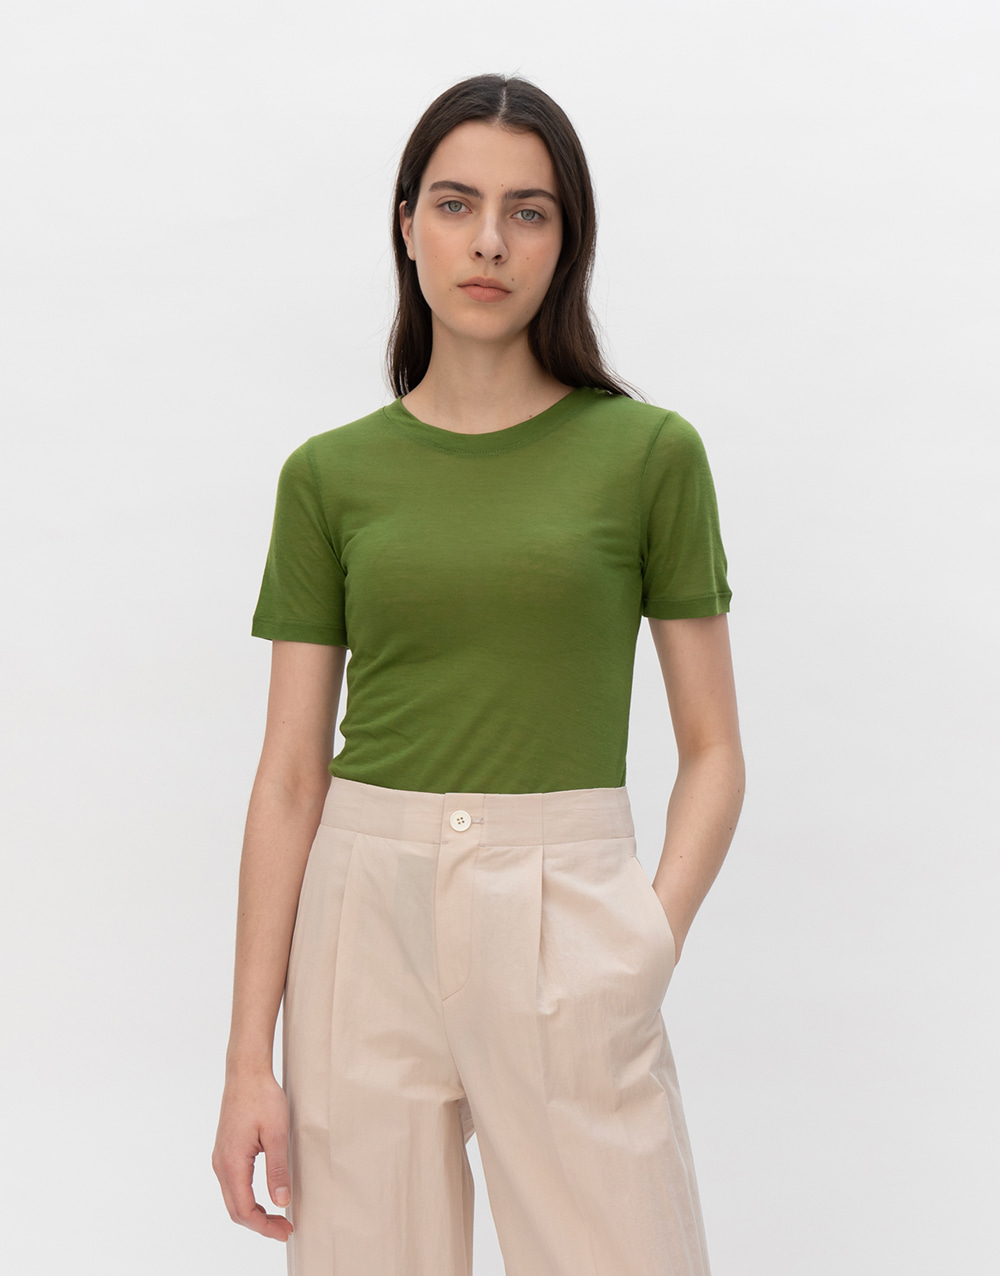 GBH APPAREL ADULT  See-through Stretch Top  FOREST GREEN